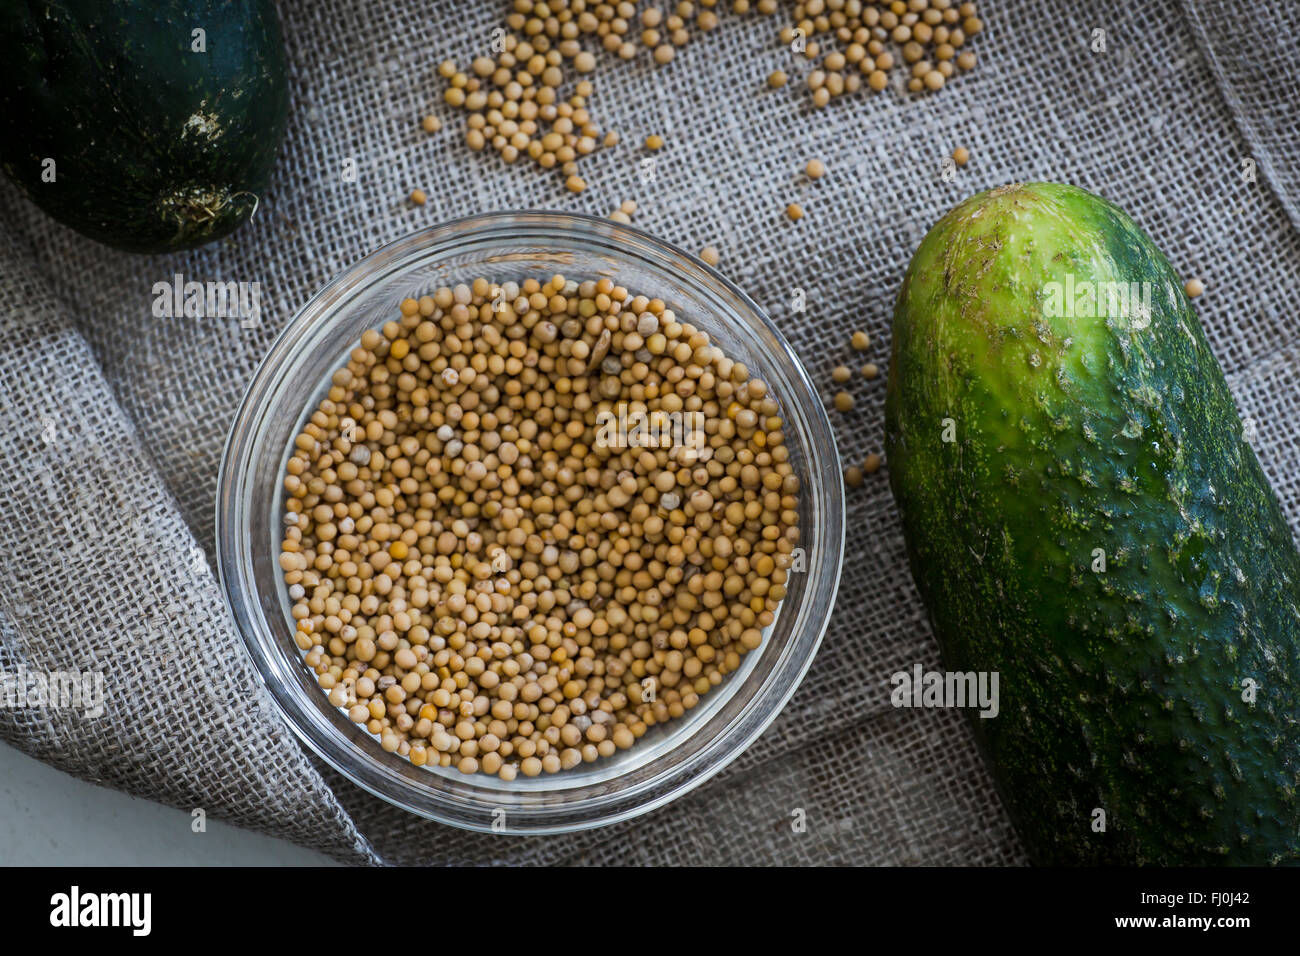 Mustard seeds and a cucumber. Ingredients for pickles - Stock Image